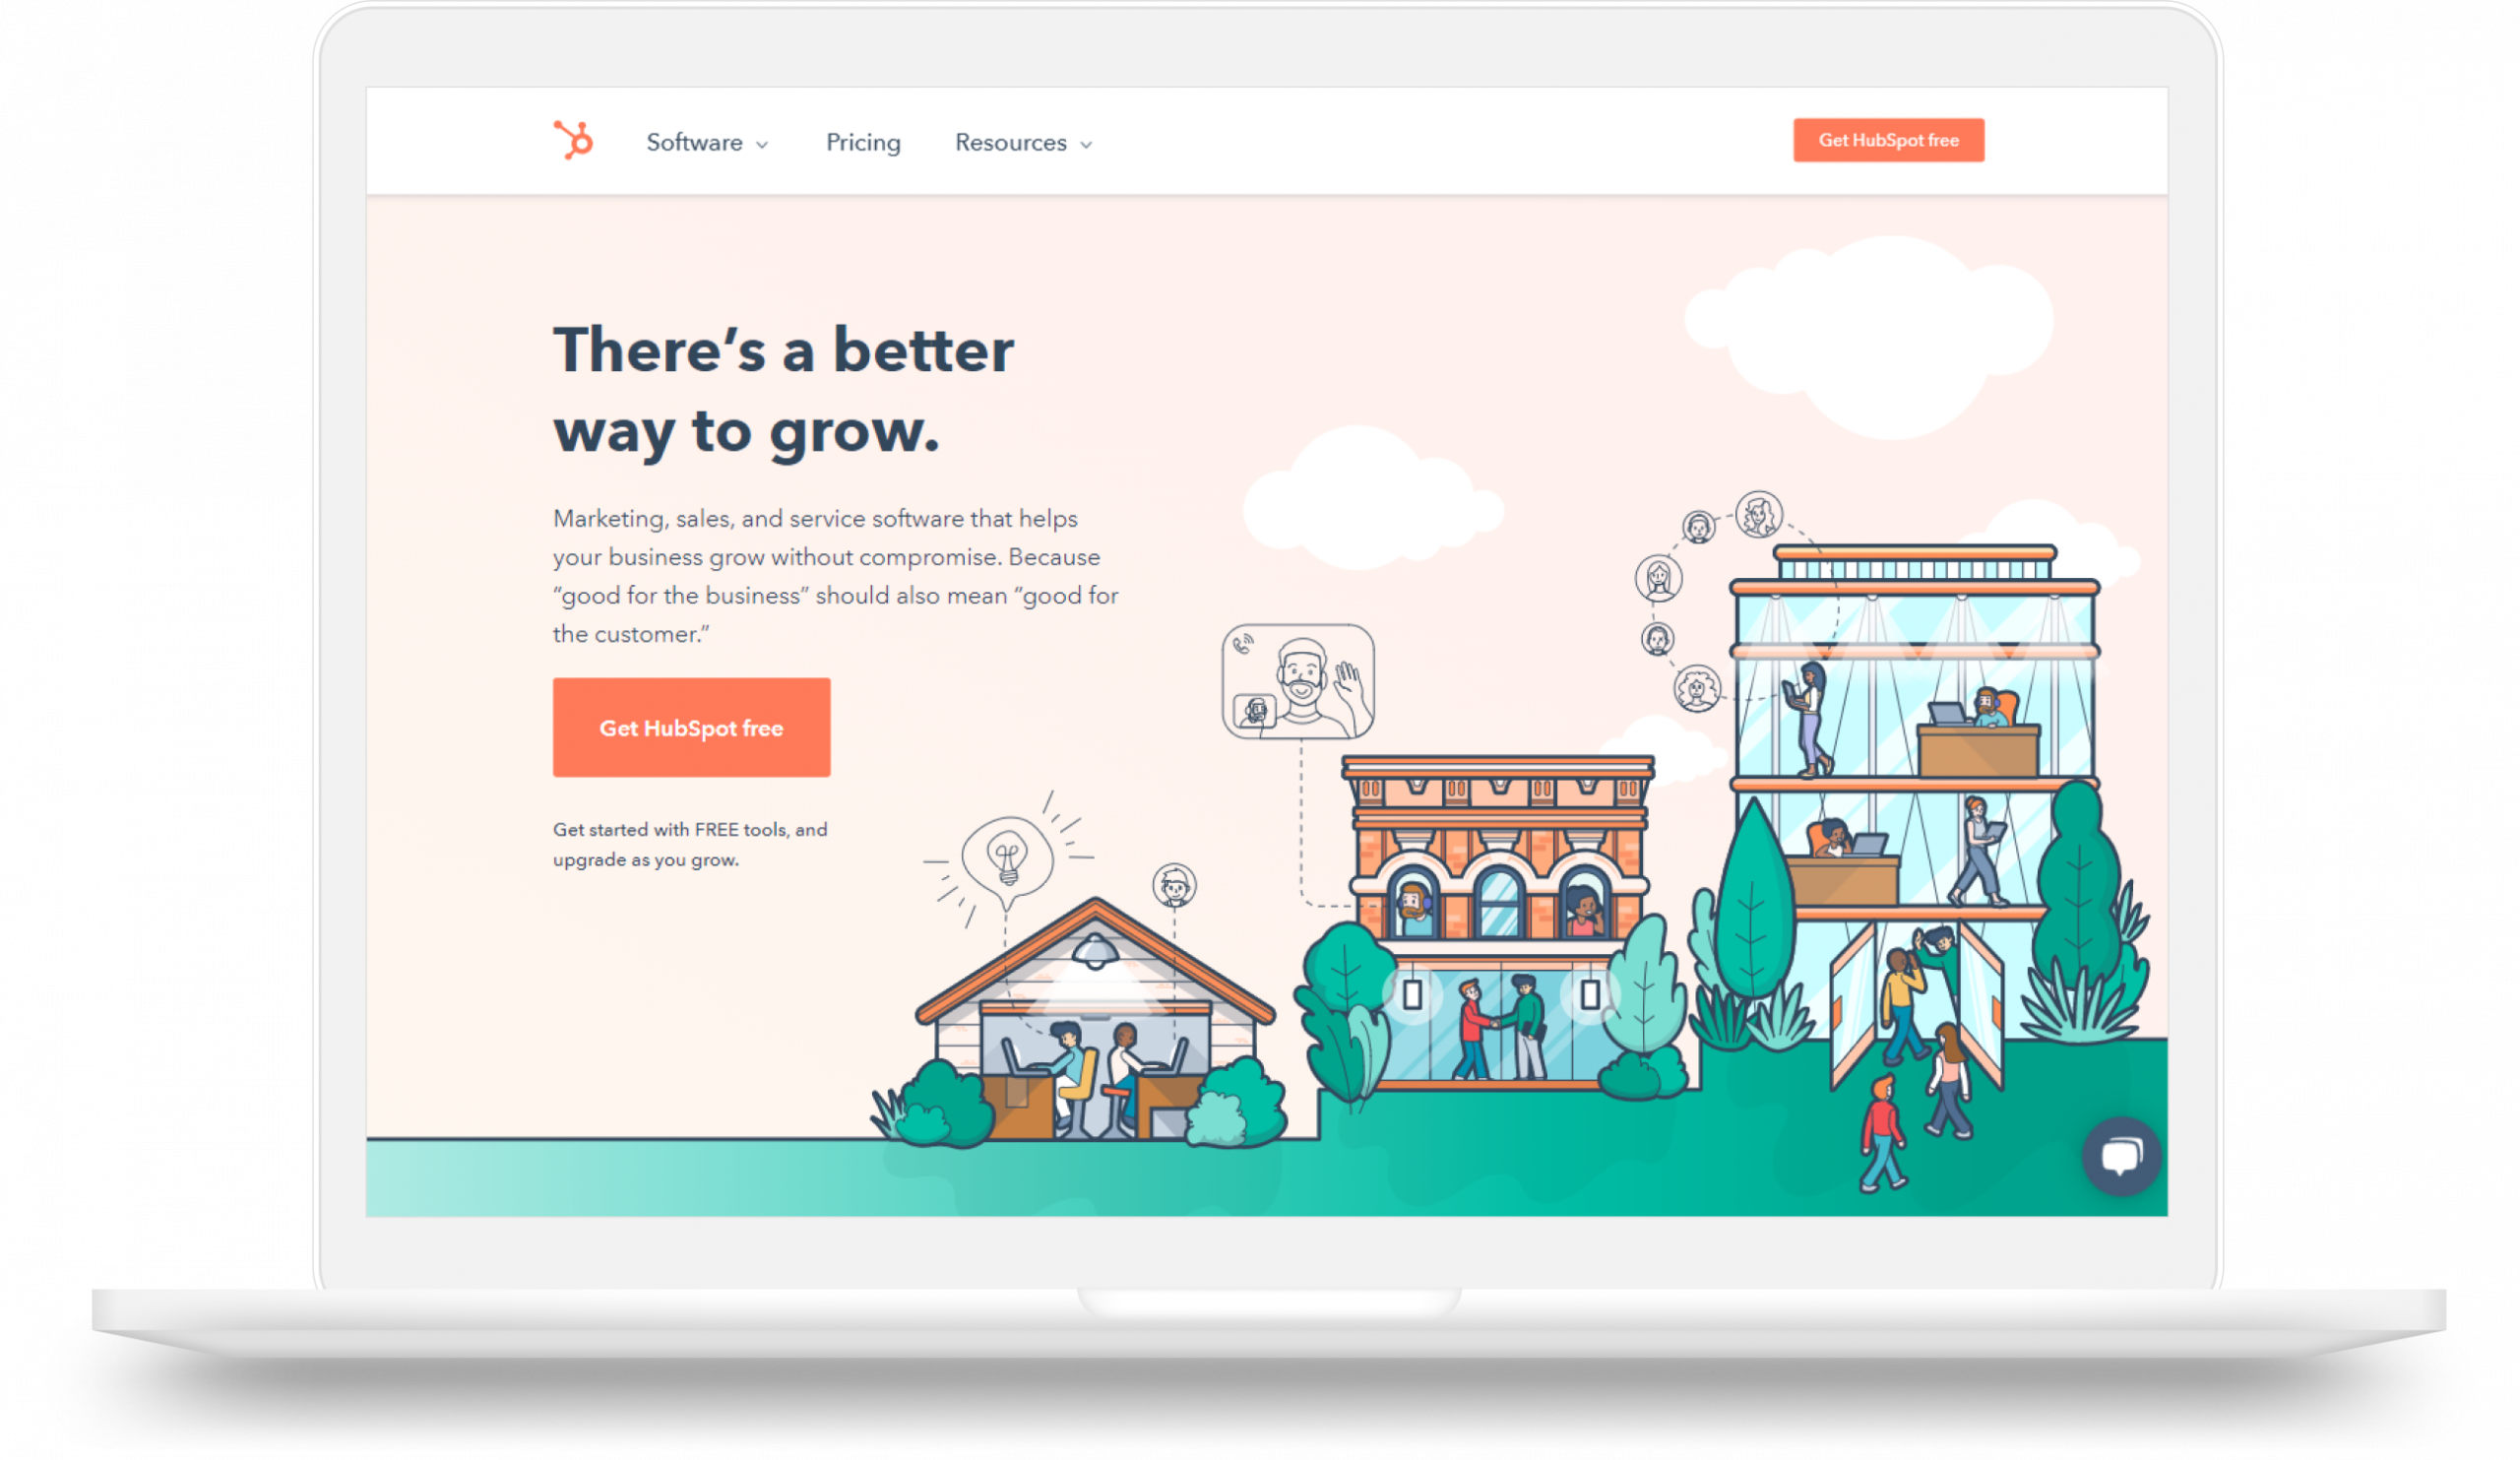 <p>A CRM could be a must for several reasons, like:<ul> <li>It centralizes data in one place for all of your teams to use. </li><li>It helps you speed up sales cycles and reduce potential customer churn. </li><li>It supports marketing and sales in lead nurturing.</li></ul>You want your CRM to be easy to use, streamline access for all of your teams, integrate seamlessly along with your other software tools, and provide insightful reporting features. This is where the HubSpot CRM stands out. It beats out the competition in pricing and also in all the features that it provides.</p>